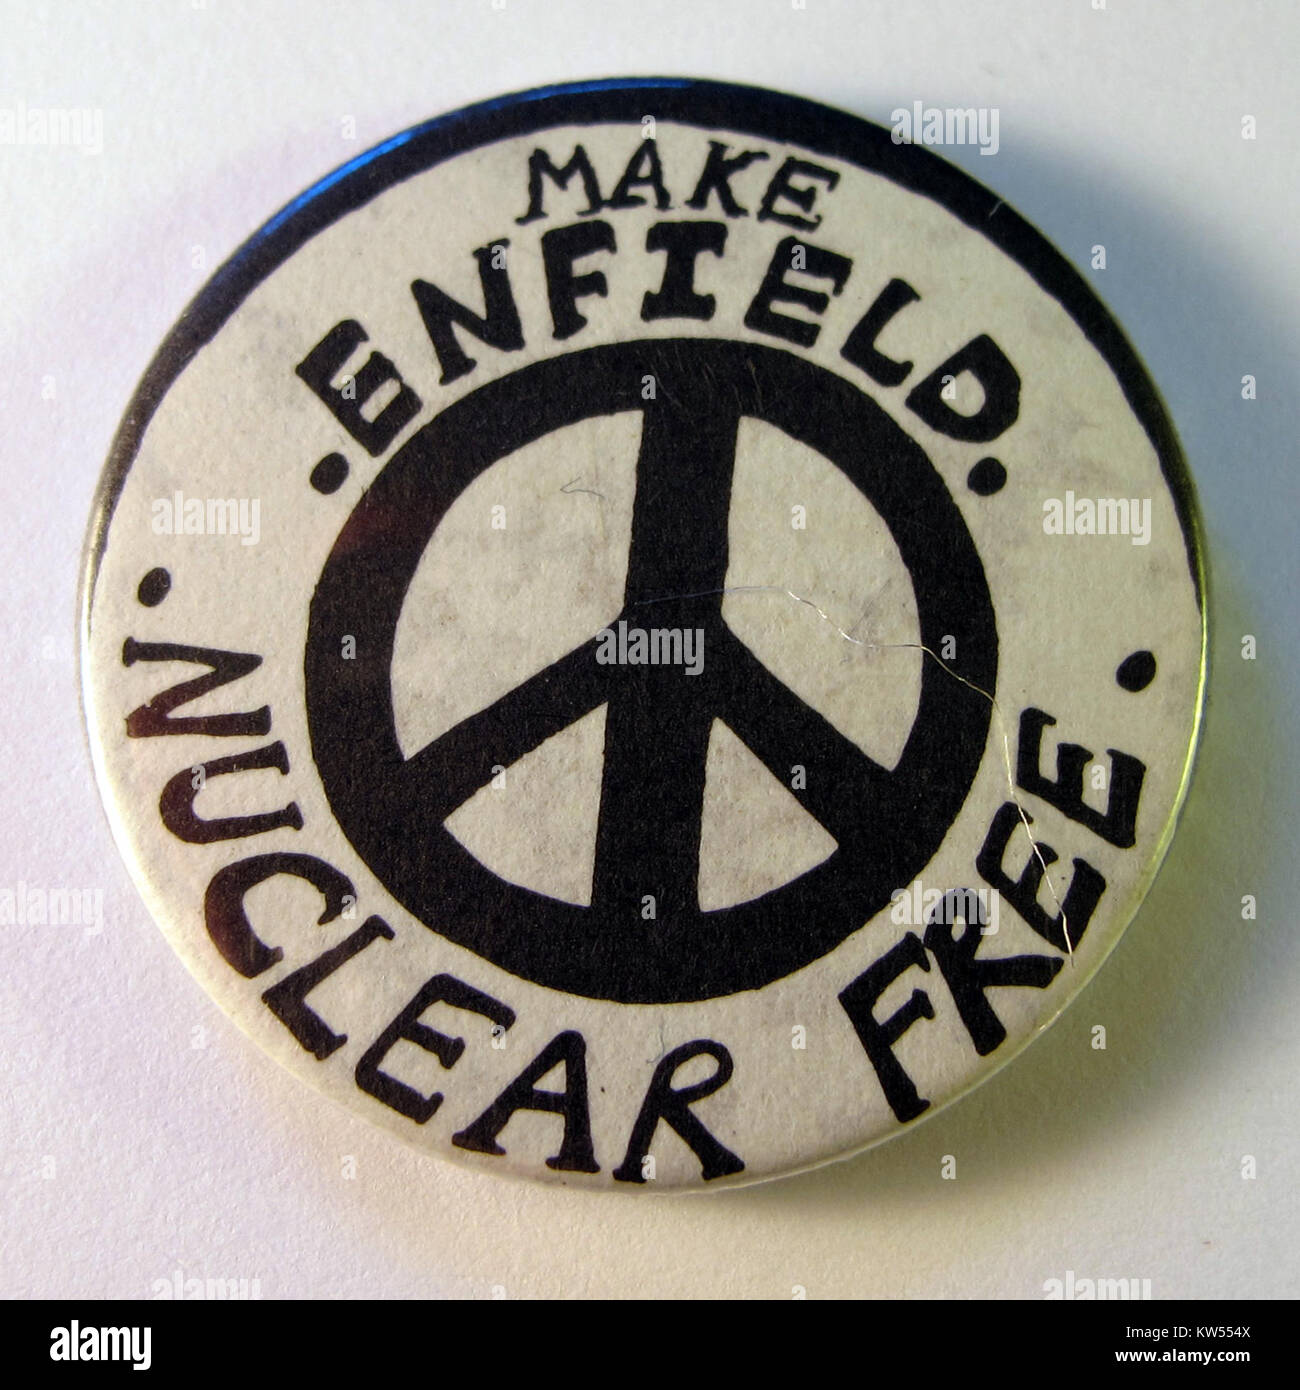 Make Enfield Nuclear Free badge, c.1984 - Stock Image